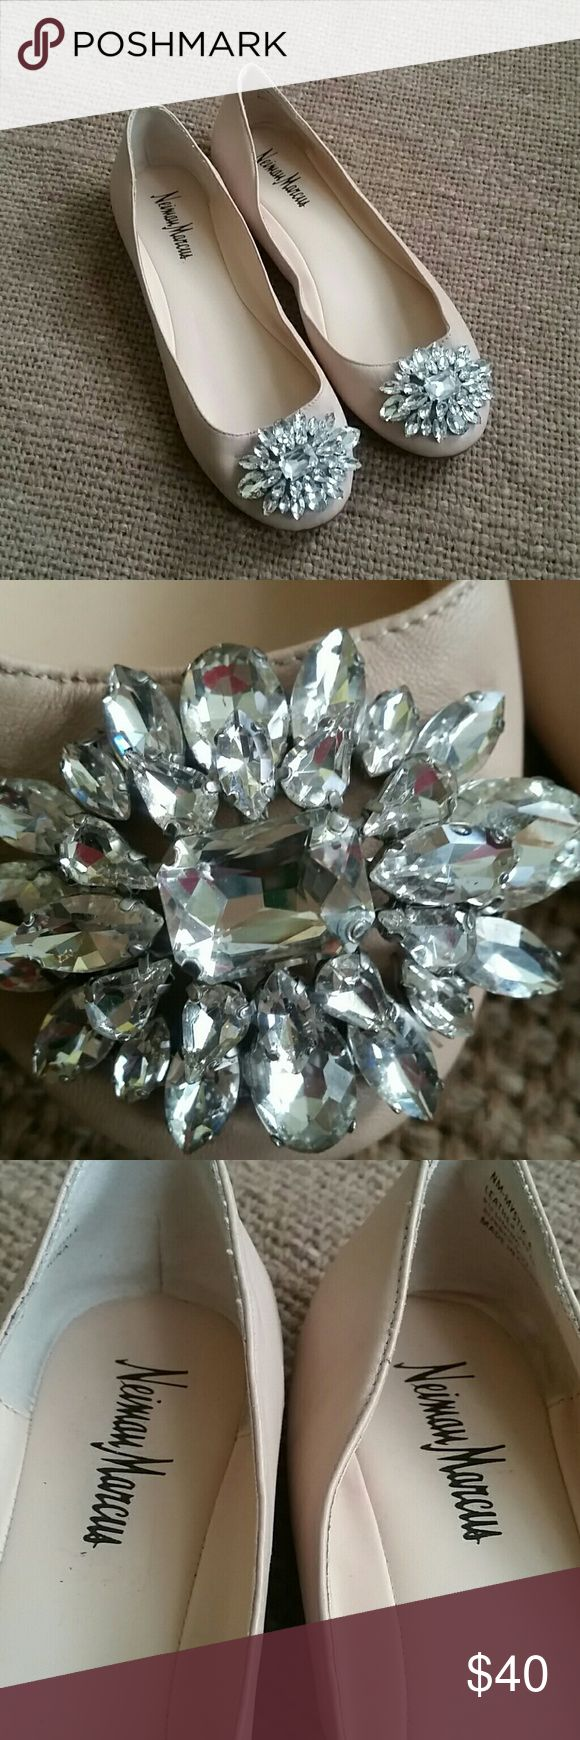 Neiman  Marcus mistic crystal   leather  flats Pre owned good condition, clean inside  gorgeous  jewelry  on front,tips good condition,  scratches  on the back  of the shoes ,check  photos Neiman Marcus Shoes Flats & Loafers